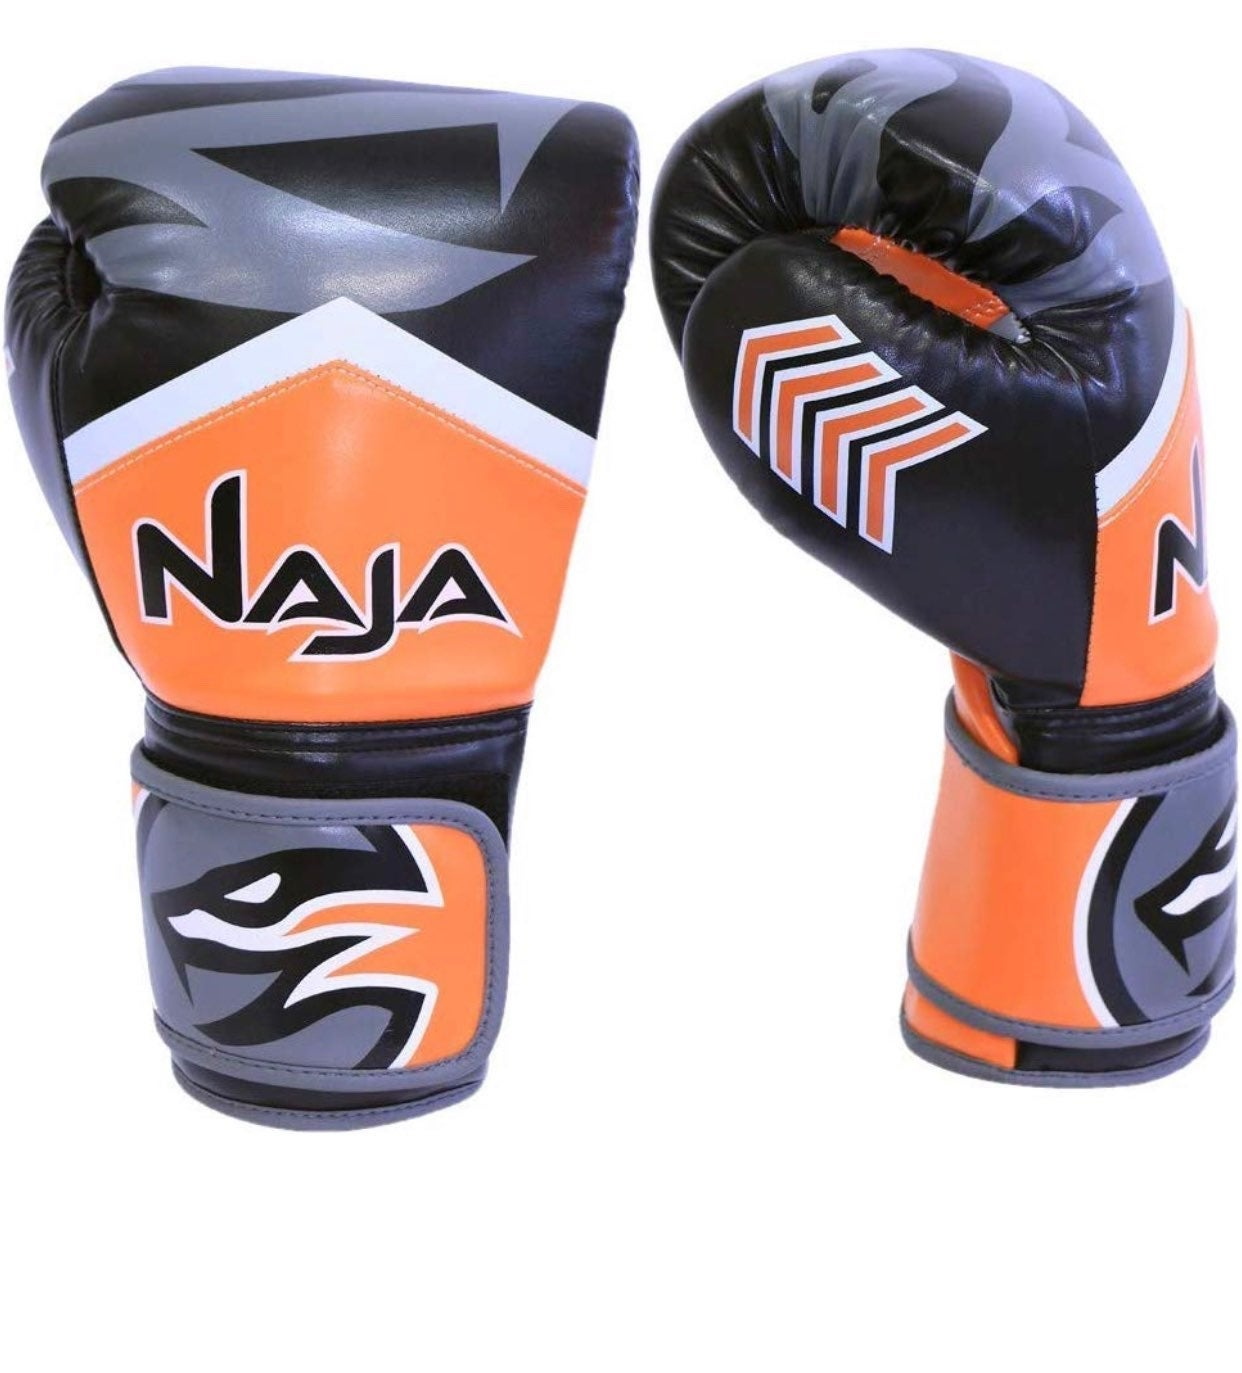 16 Oz Boxing Fighting MMA Train Gloves